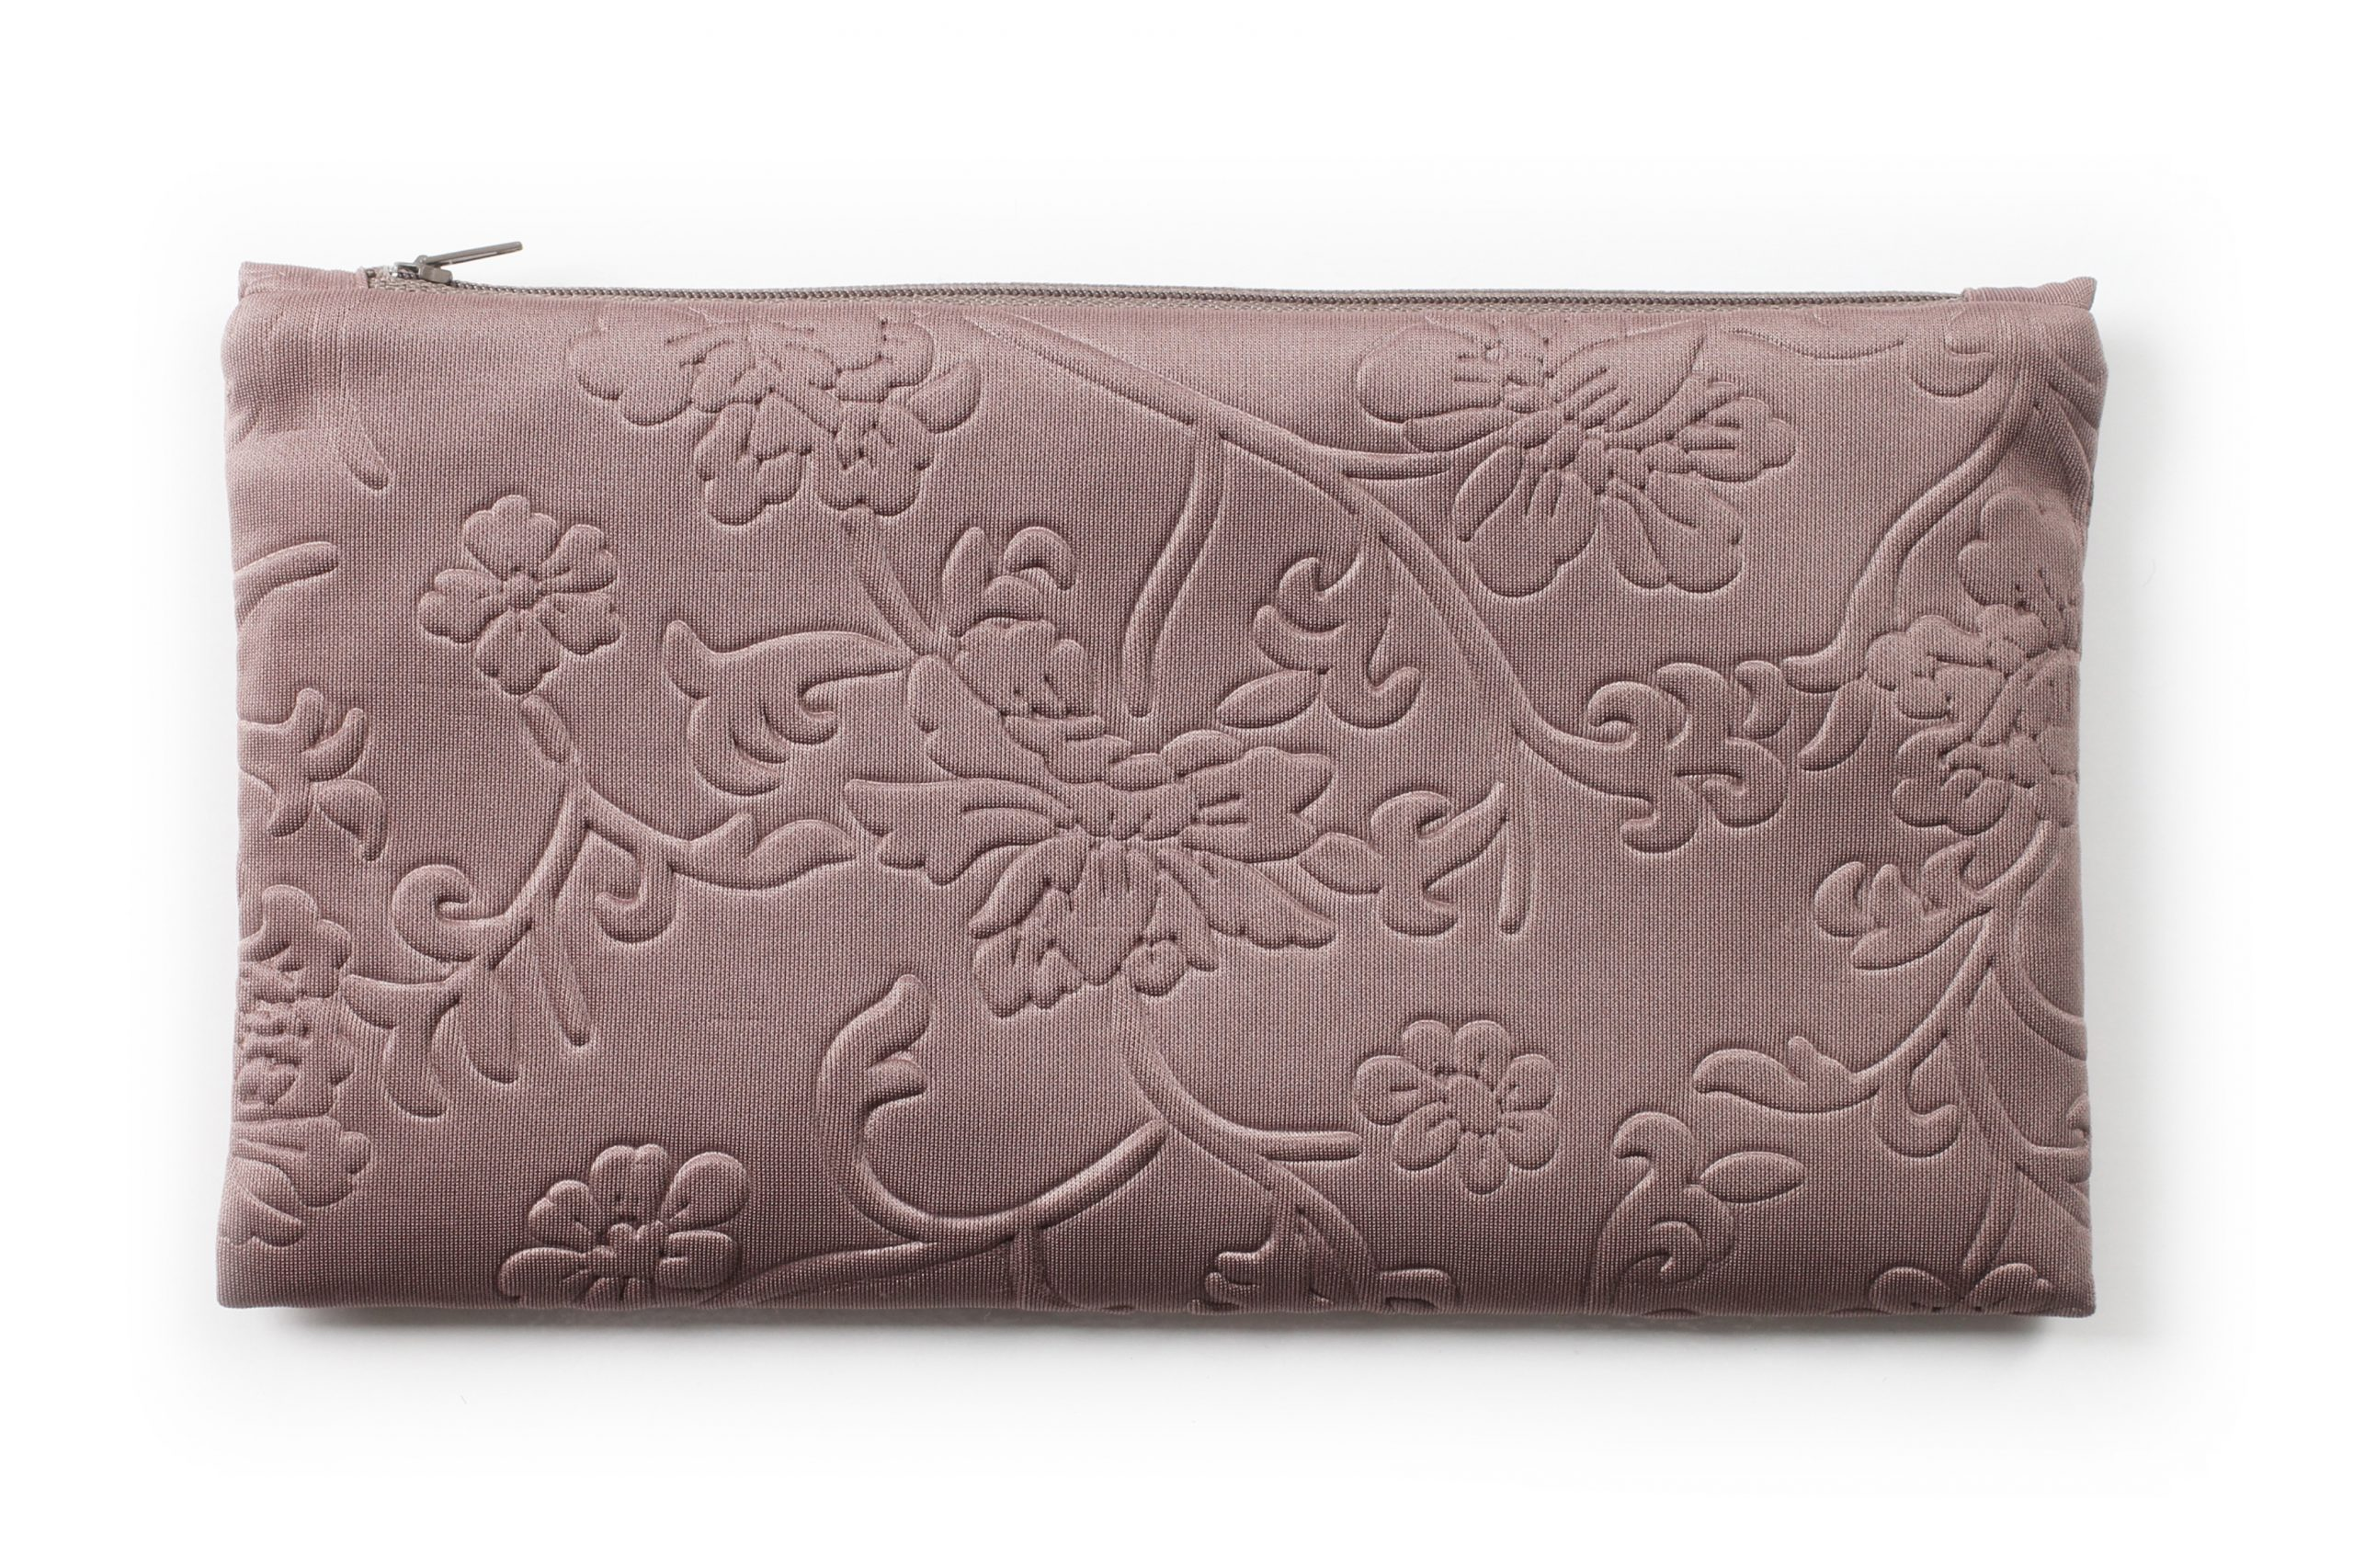 Cacao Flowers Clutch bag – Evening clutch bags online